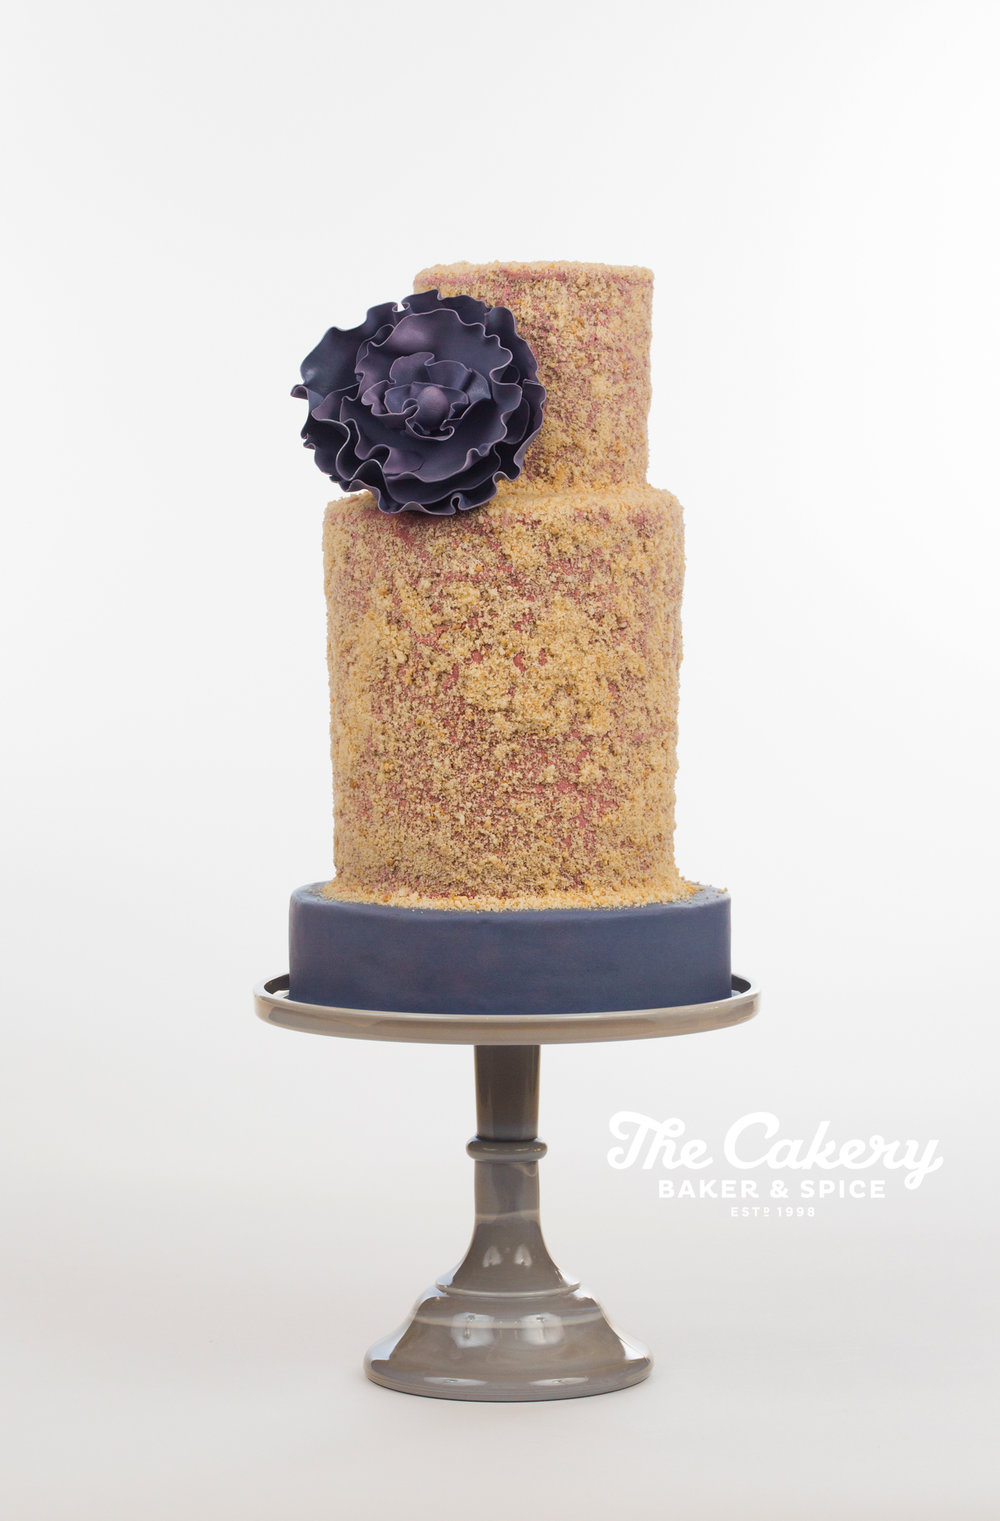 Baker and Spice - Wedding Cakes - 00157 logo.jpg